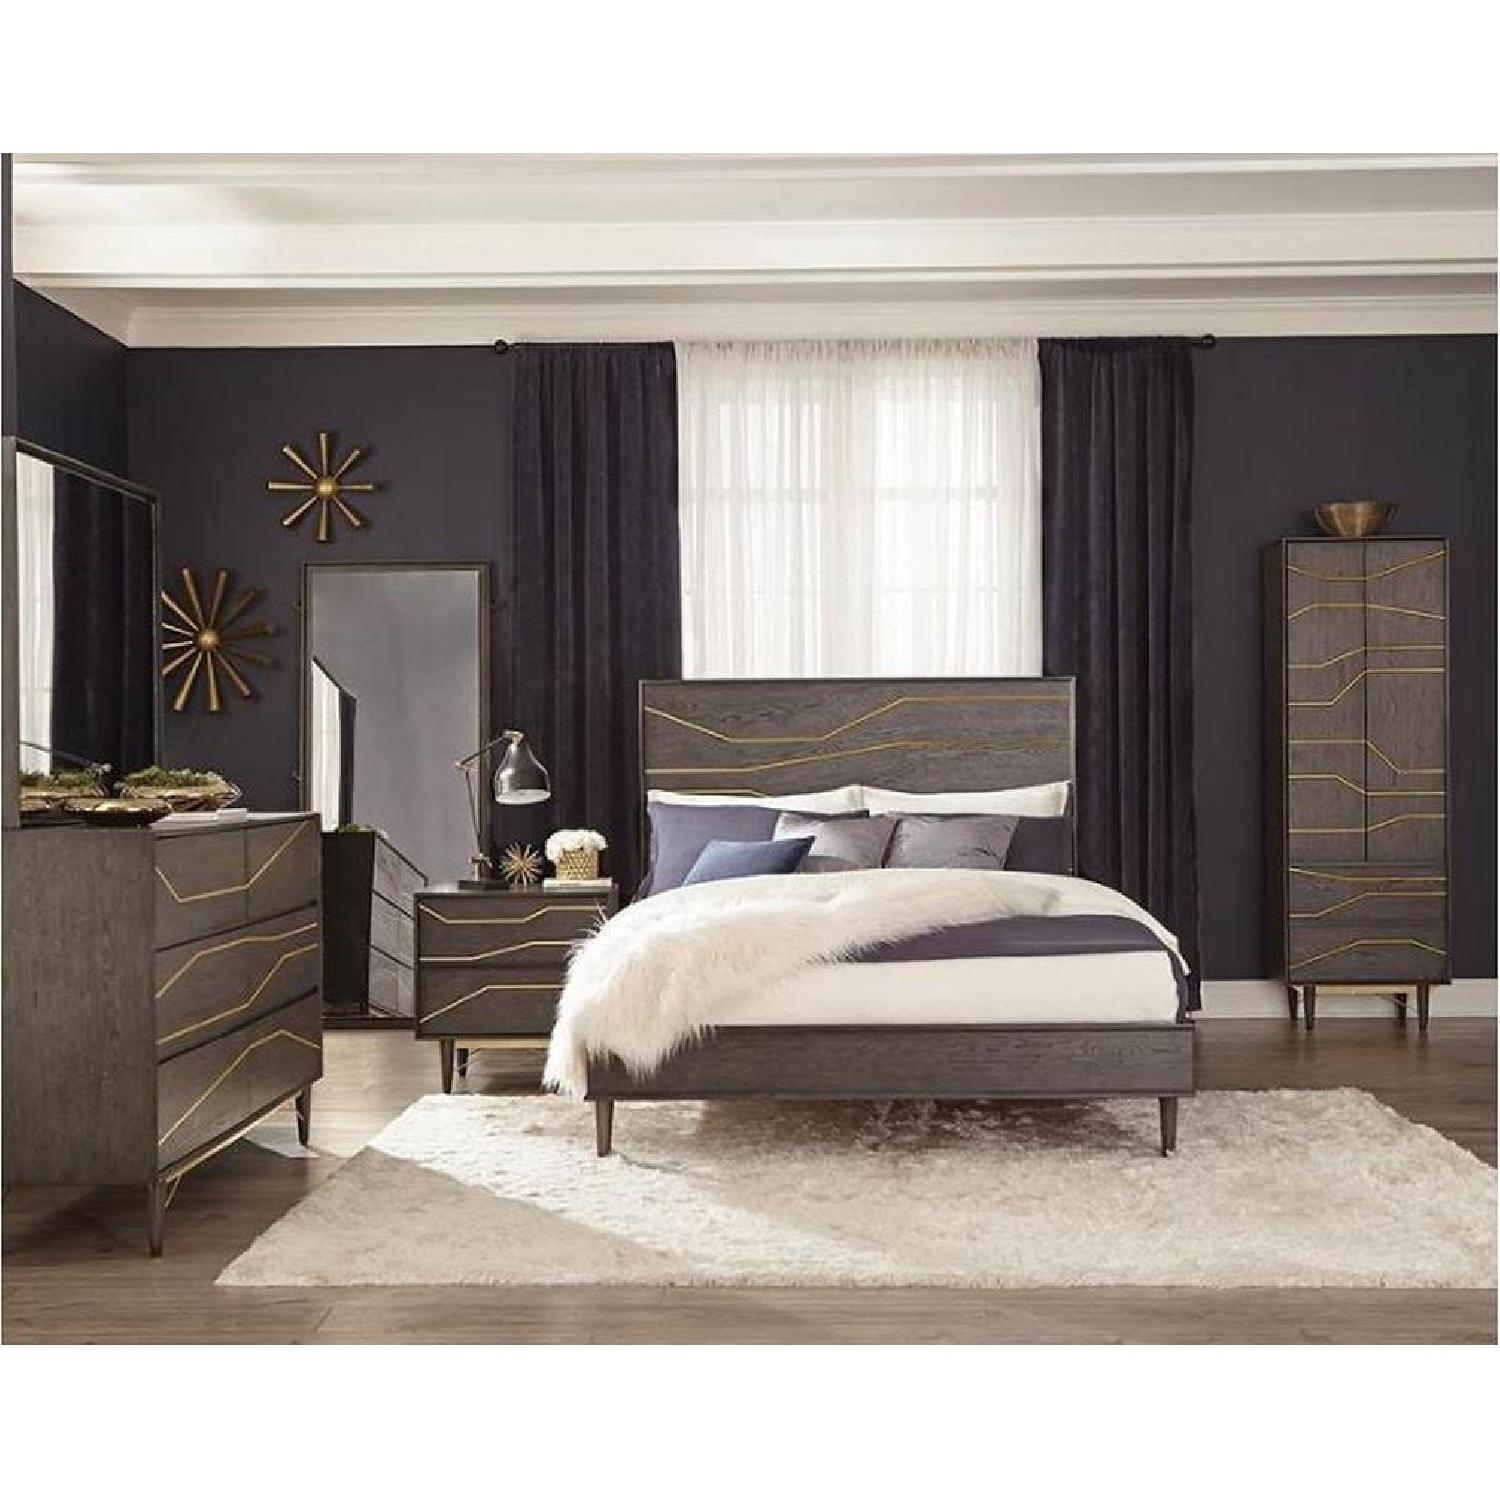 Modern Dresser in Graphite Finish w/ Gold Color Inlay - image-7